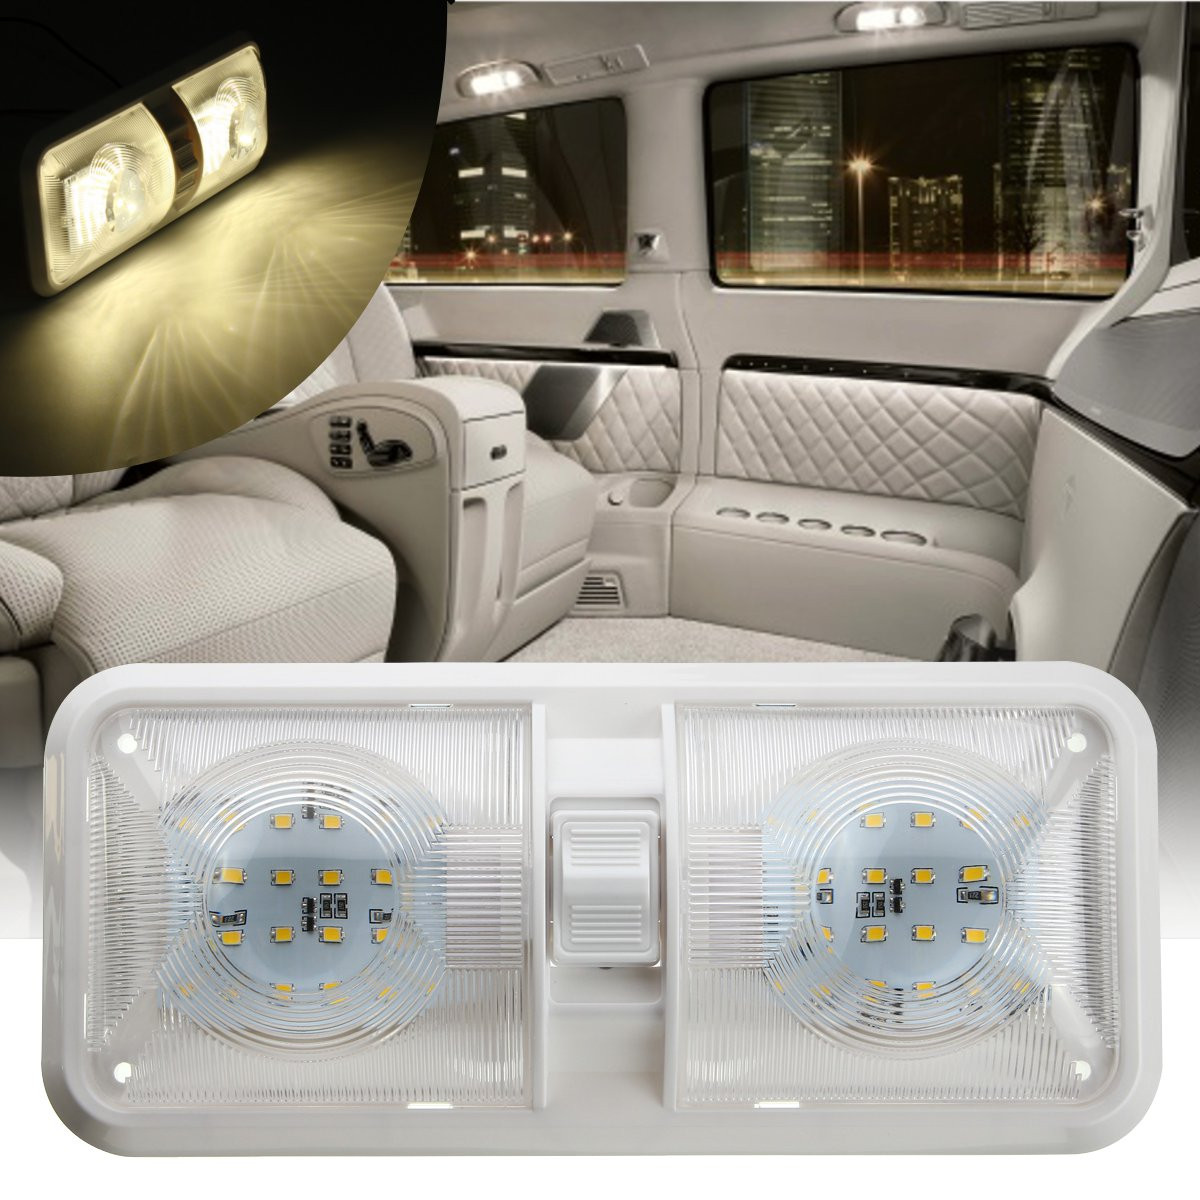 1PC Car 12V 48LED Interior Double Dome Ceiling Light For RV Boat for Camper Trailer Truck Boat LED interior Light 1pc car 12v 48led interior double dome ceiling light for rv boat for camper trailer truck boat led interior light